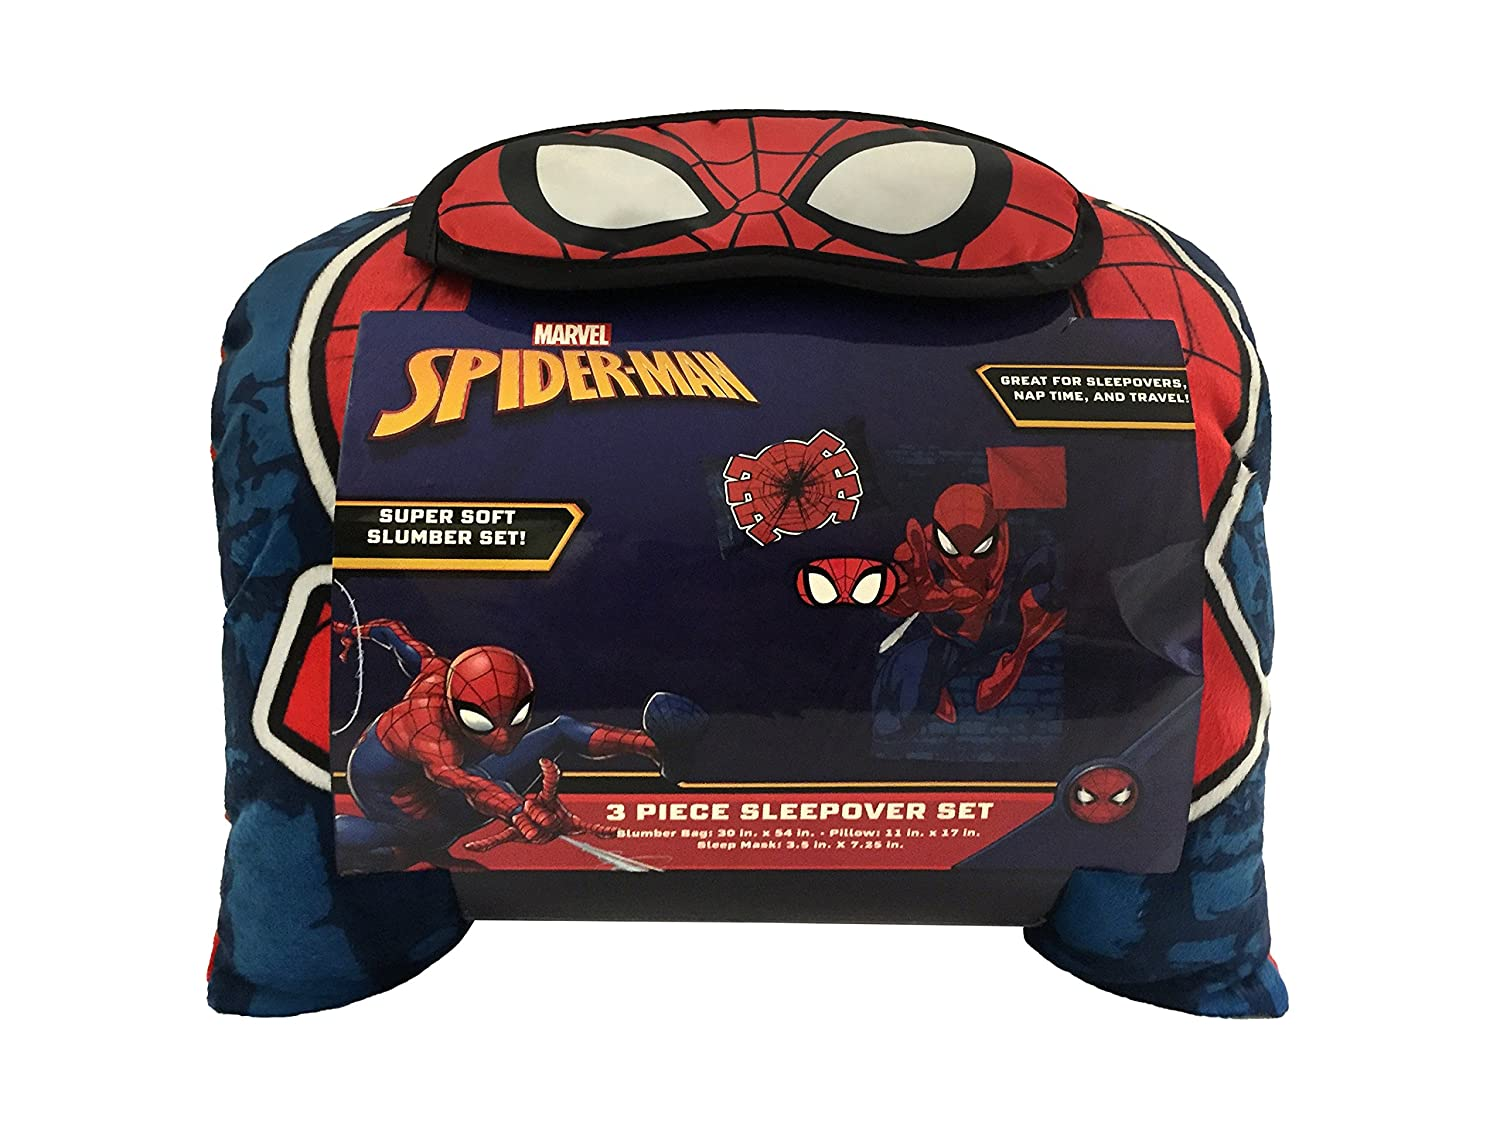 Jay Franco Marvel Black Panther 3 Piece Sleepover Set Official Marvel Product Cozy /& Warm Kids Slumber Bag with Pillow /& Eye Mask